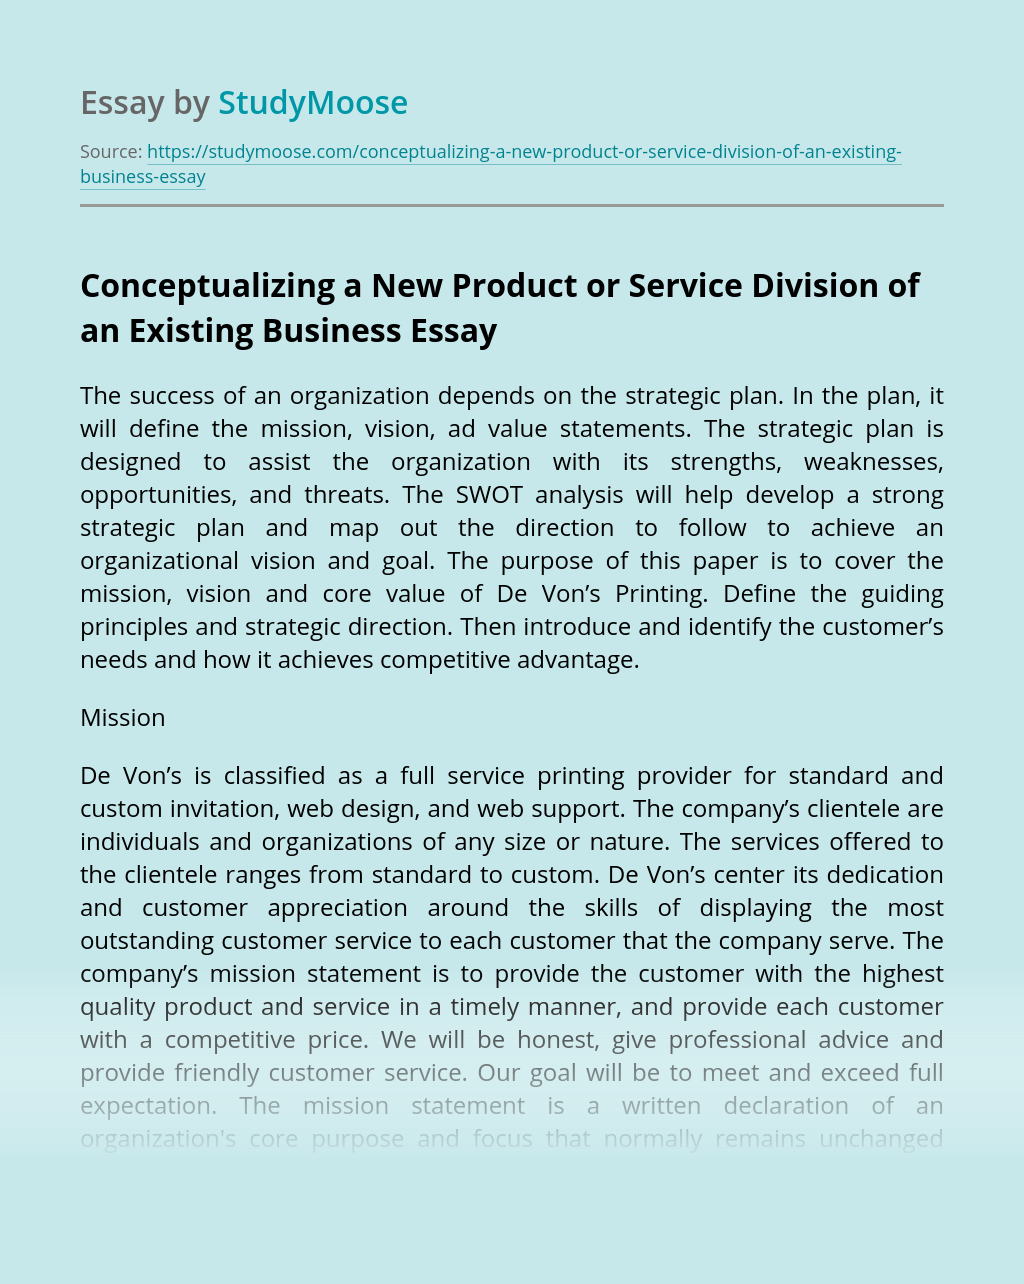 Conceptualizing a New Product or Service Division of an Existing Business